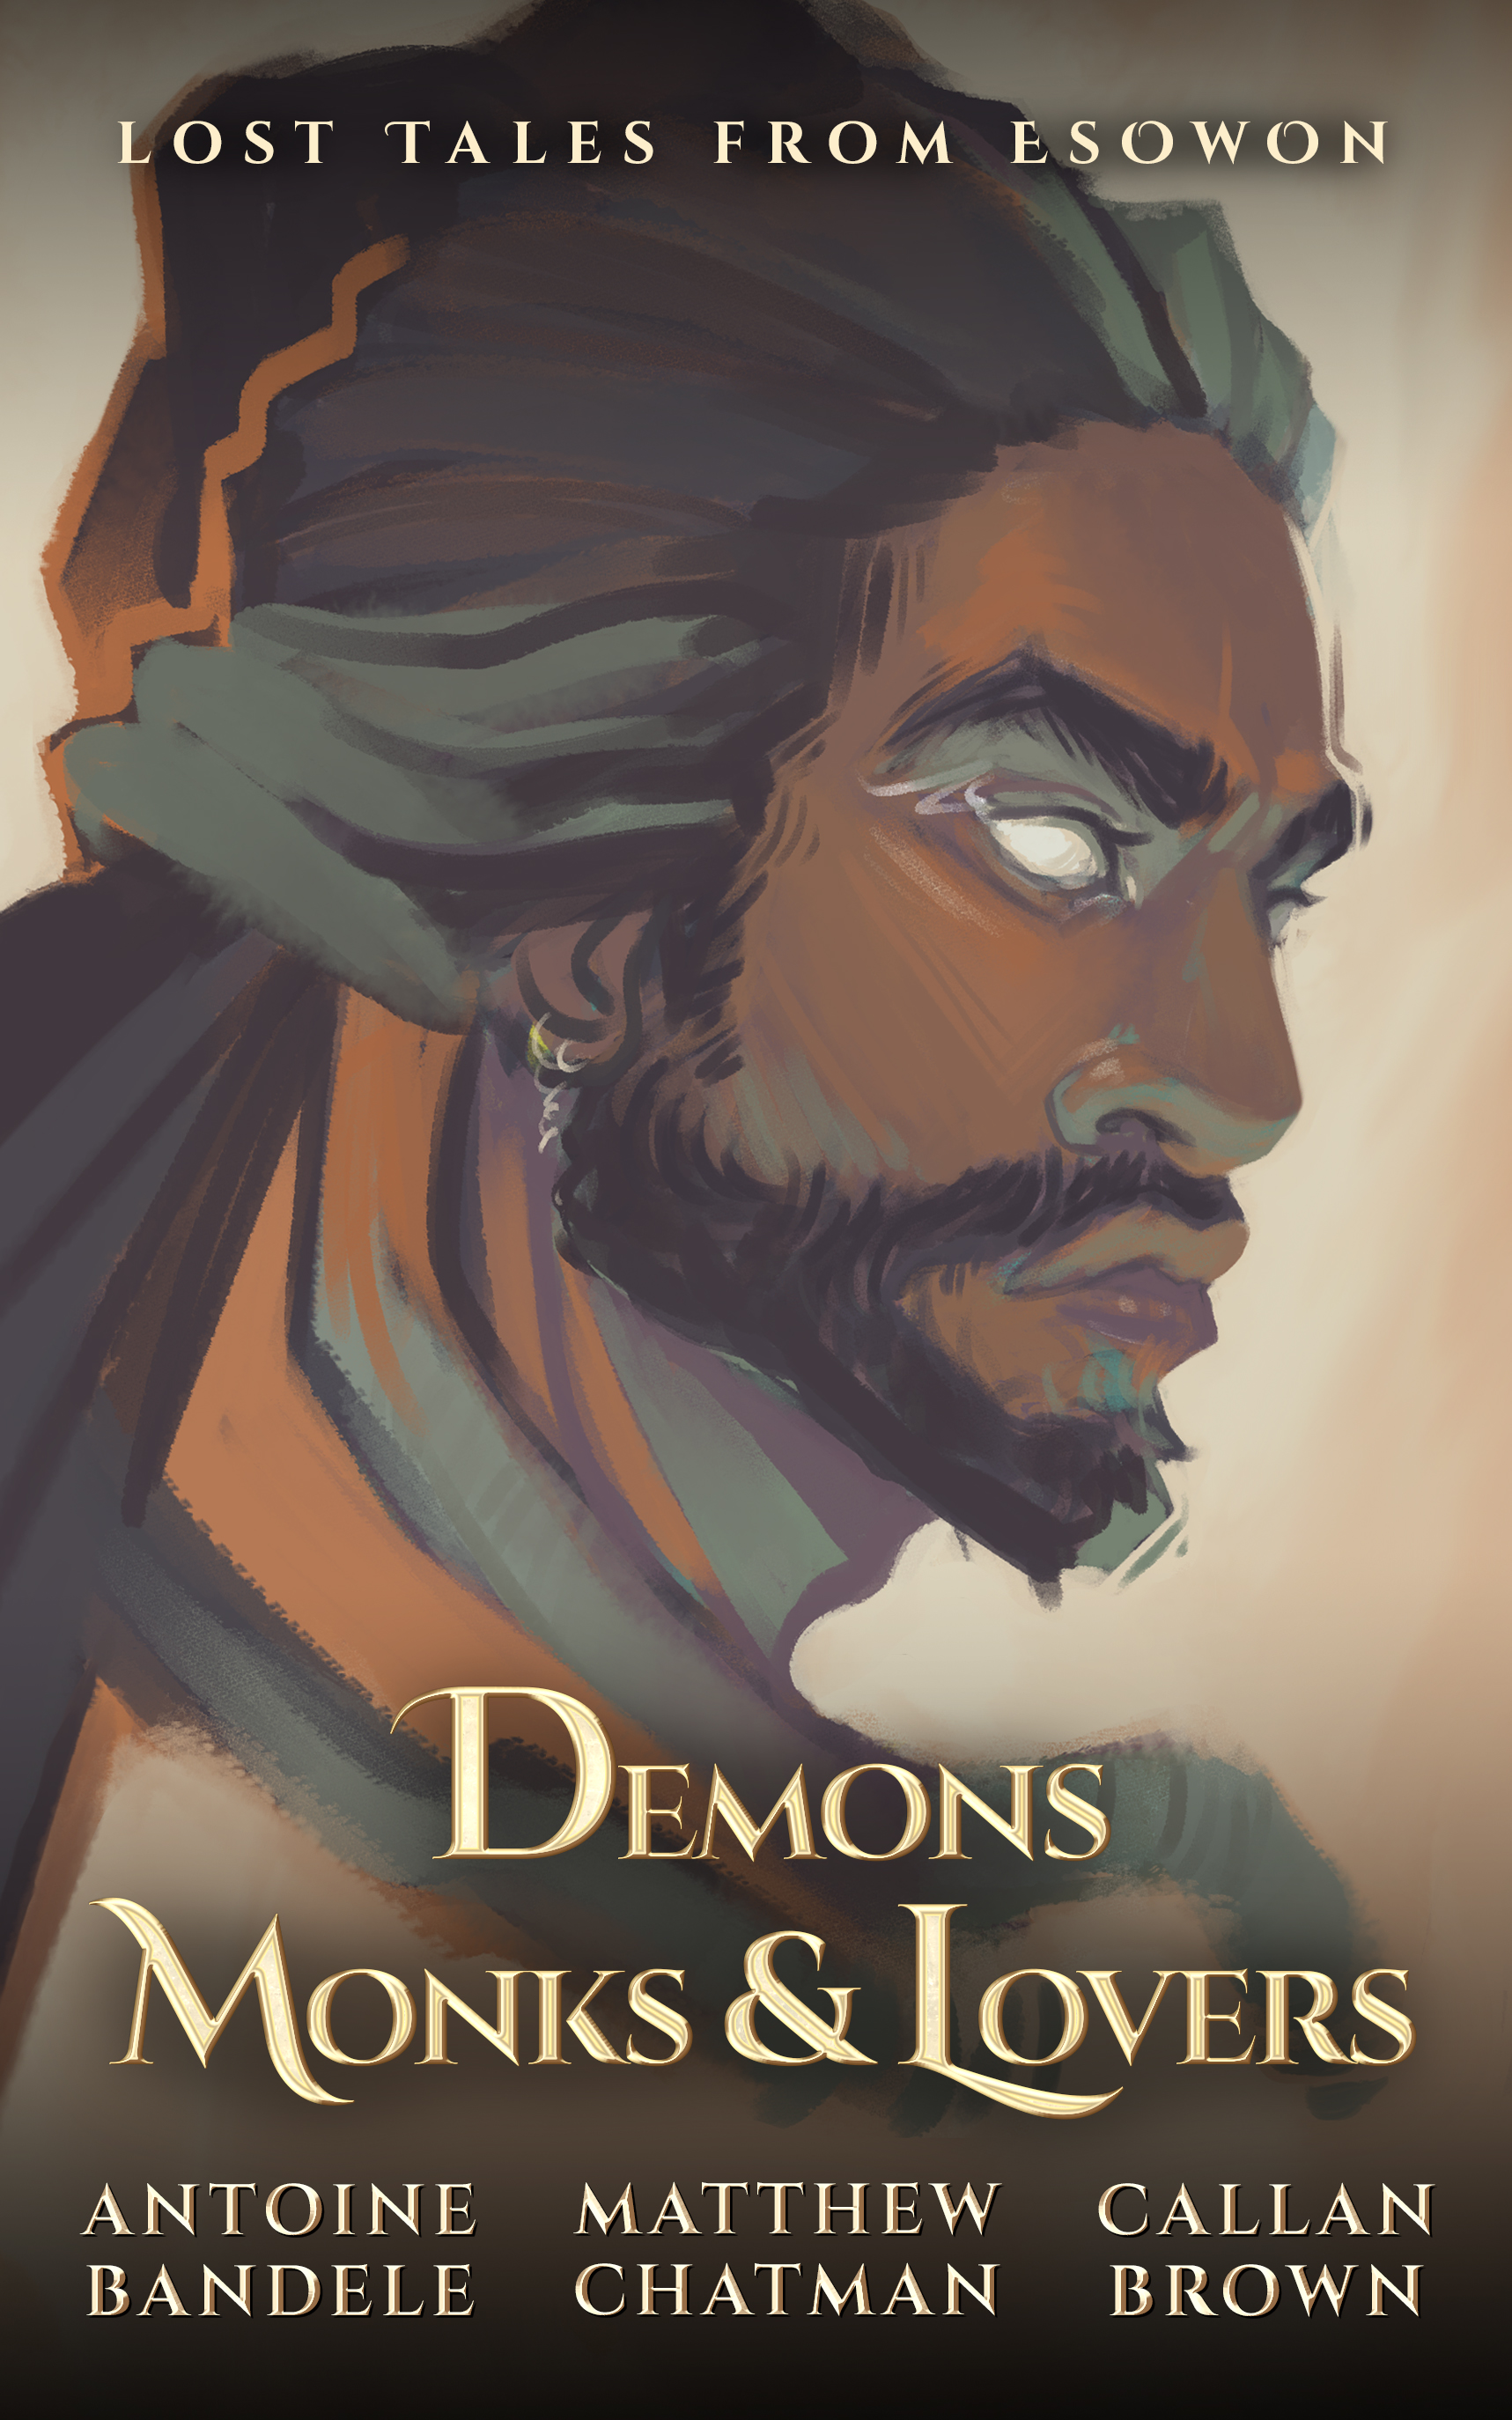 DEMONS, MONKS, & LOVERS - The first collection in the ongoing series of shorts, novelettes, and novellas compiling fantasy stories from the world of Esowon.Inside you will find dastardly beasts, tortured monks, and unexpected lovers in a set of tales that'll transport you to lands lost to time.◦ PRE-ORDER